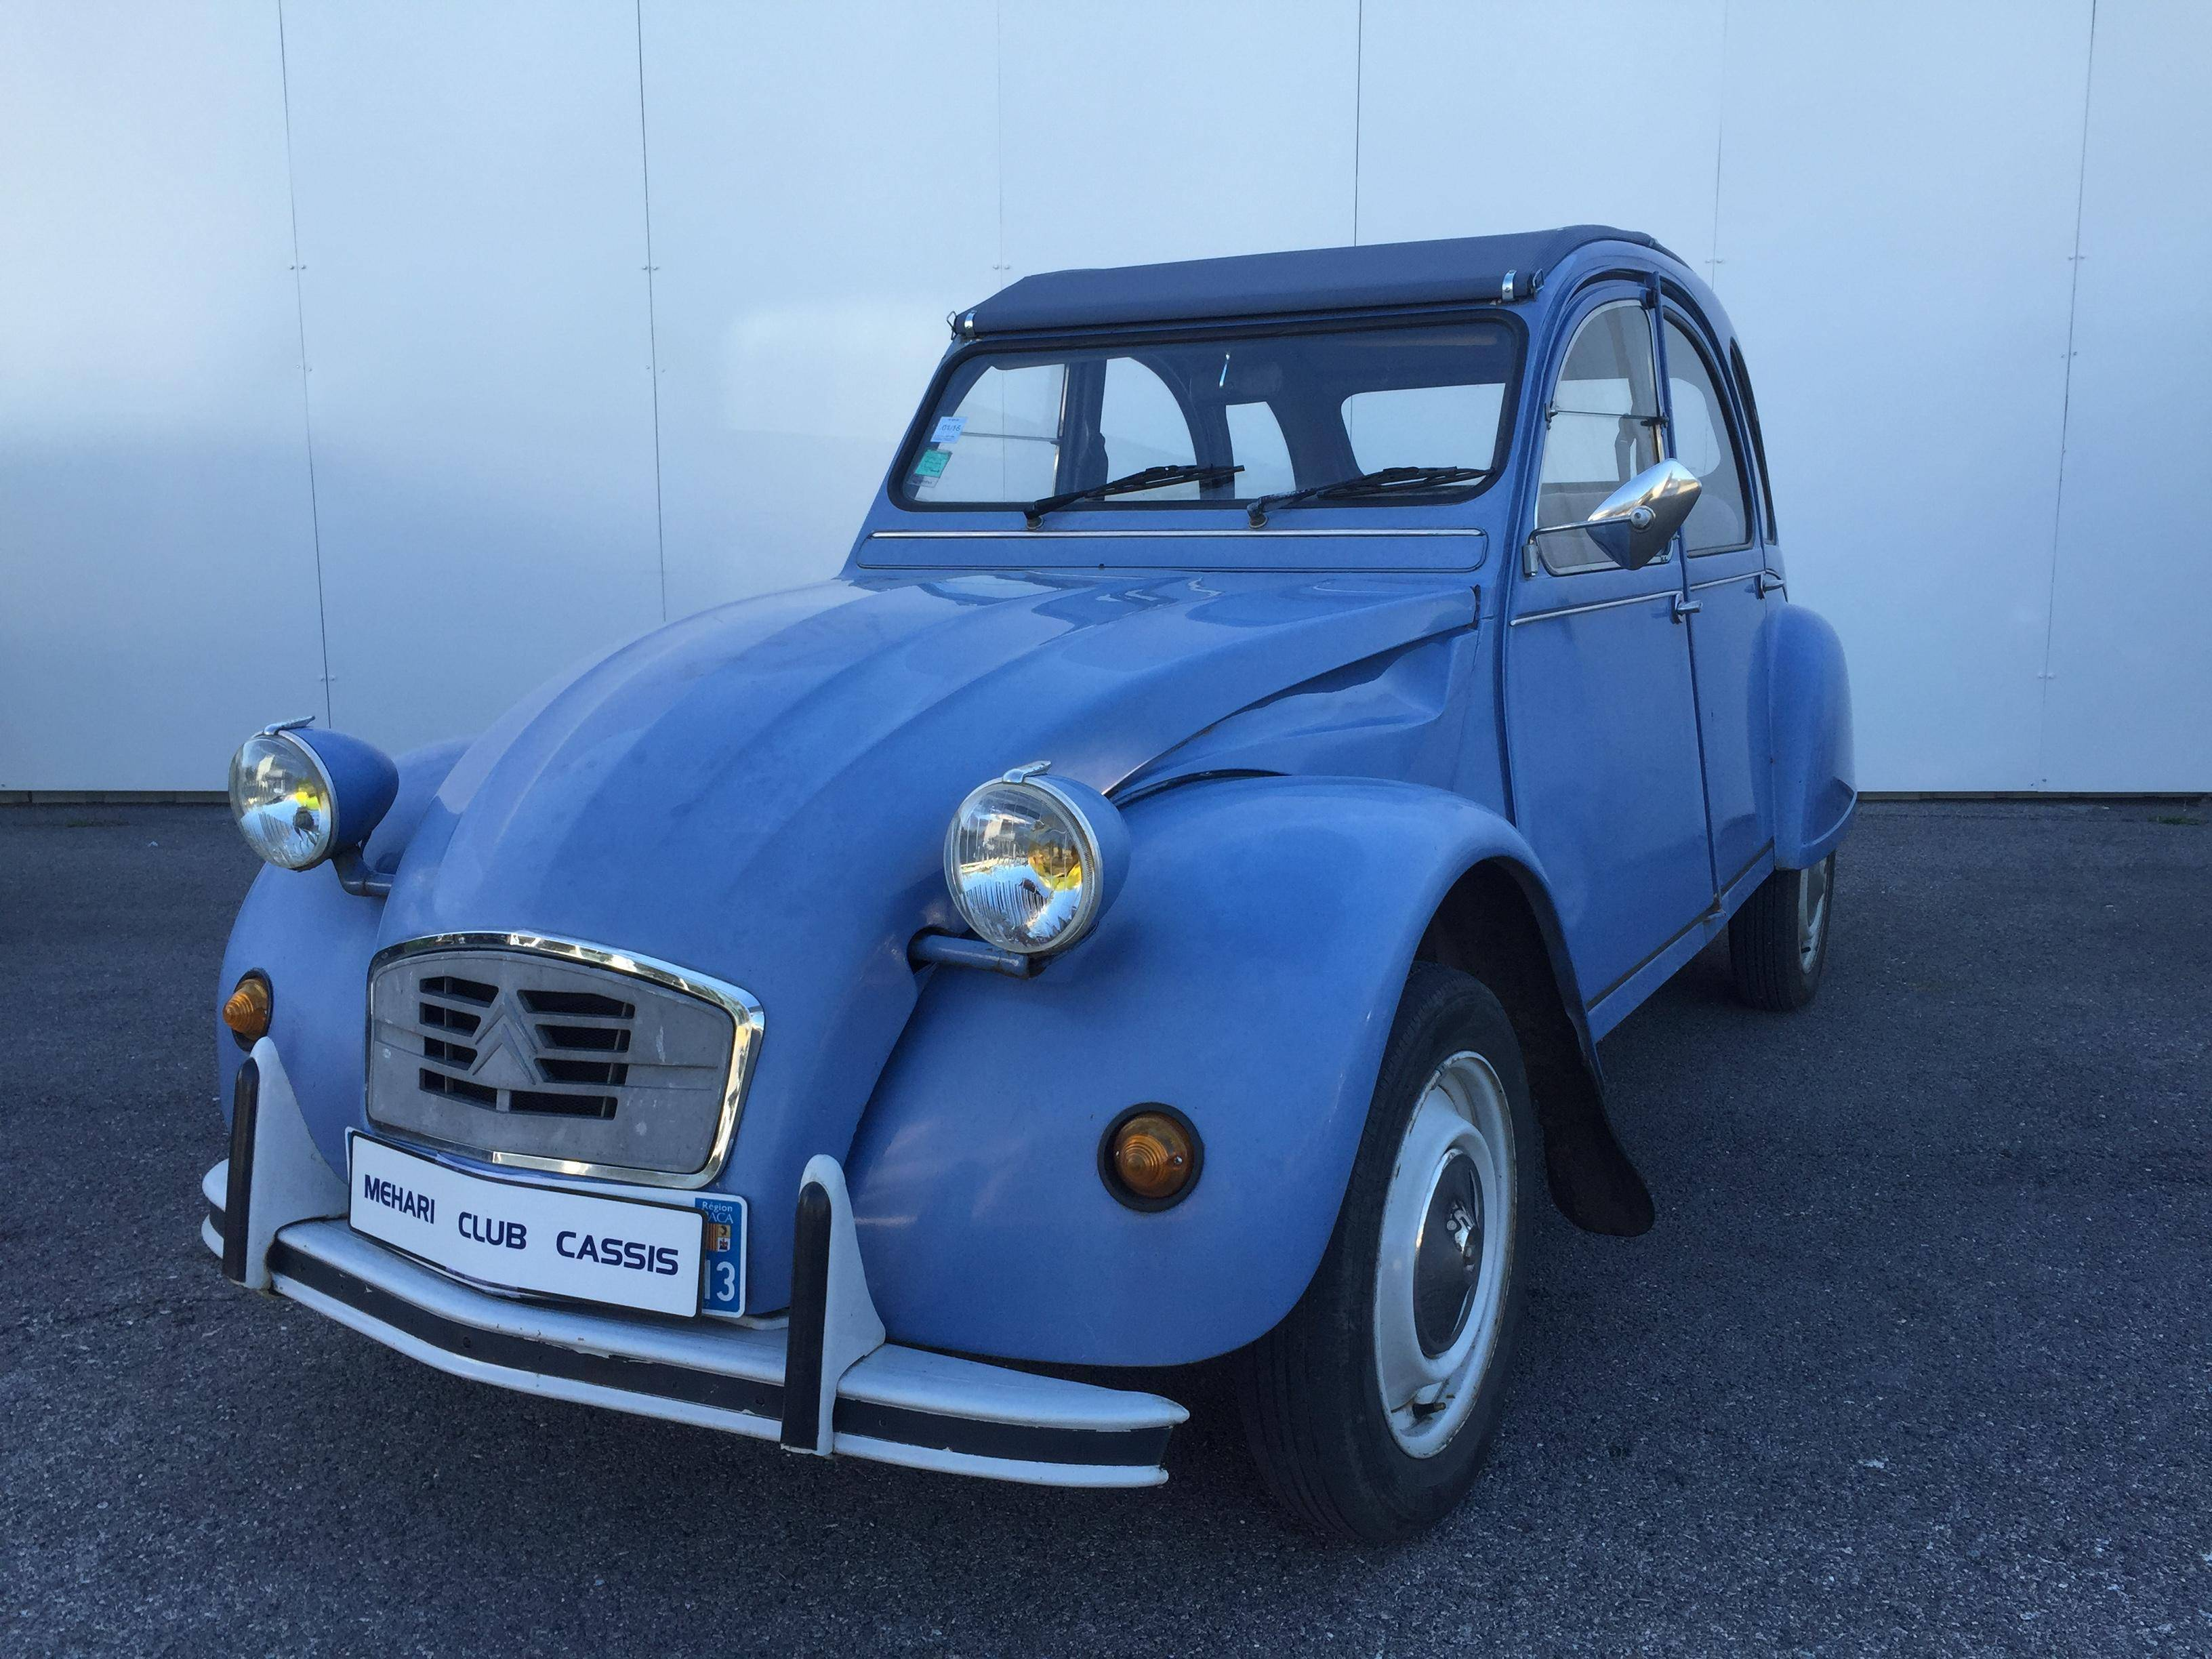 2cv6 sp ciale bleue 1987 mehari 2cv club cassis. Black Bedroom Furniture Sets. Home Design Ideas